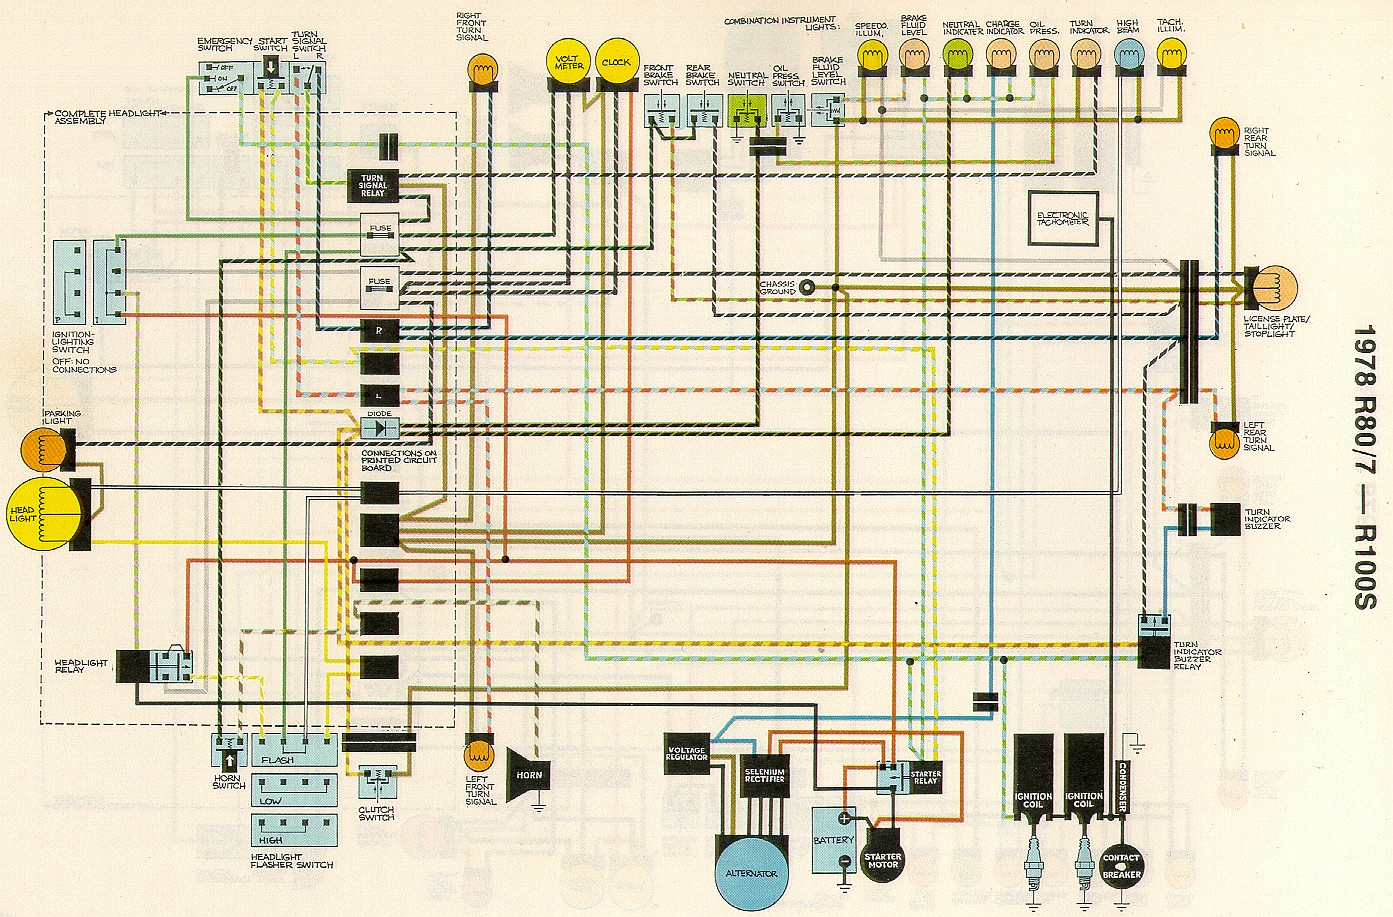 78 5 united articles wiring diagrams bmw r100rs gauge wiring diagram at honlapkeszites.co